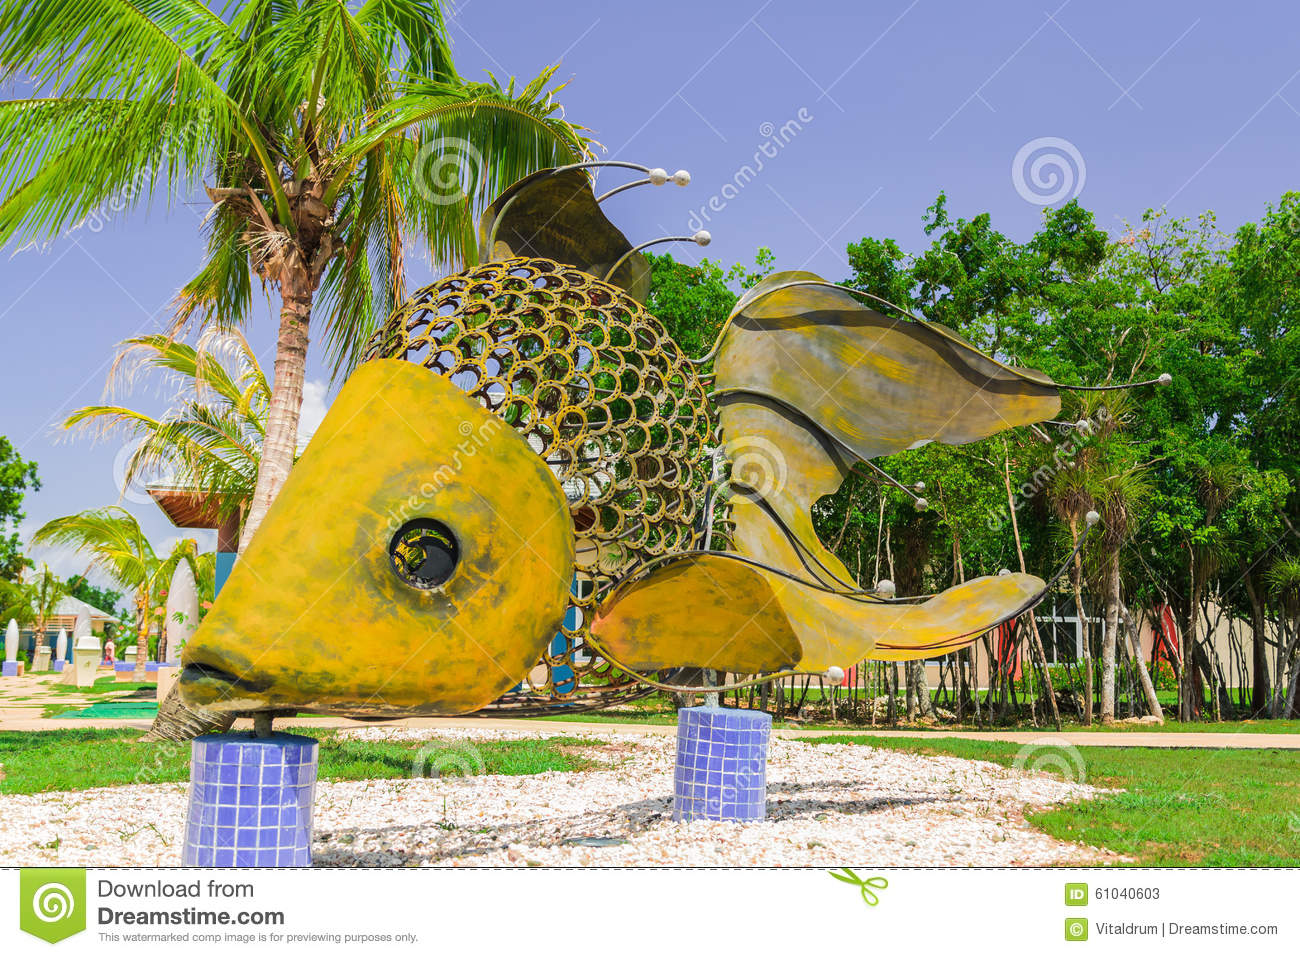 giant big, decorative beutiful fish made of metal and horshoe